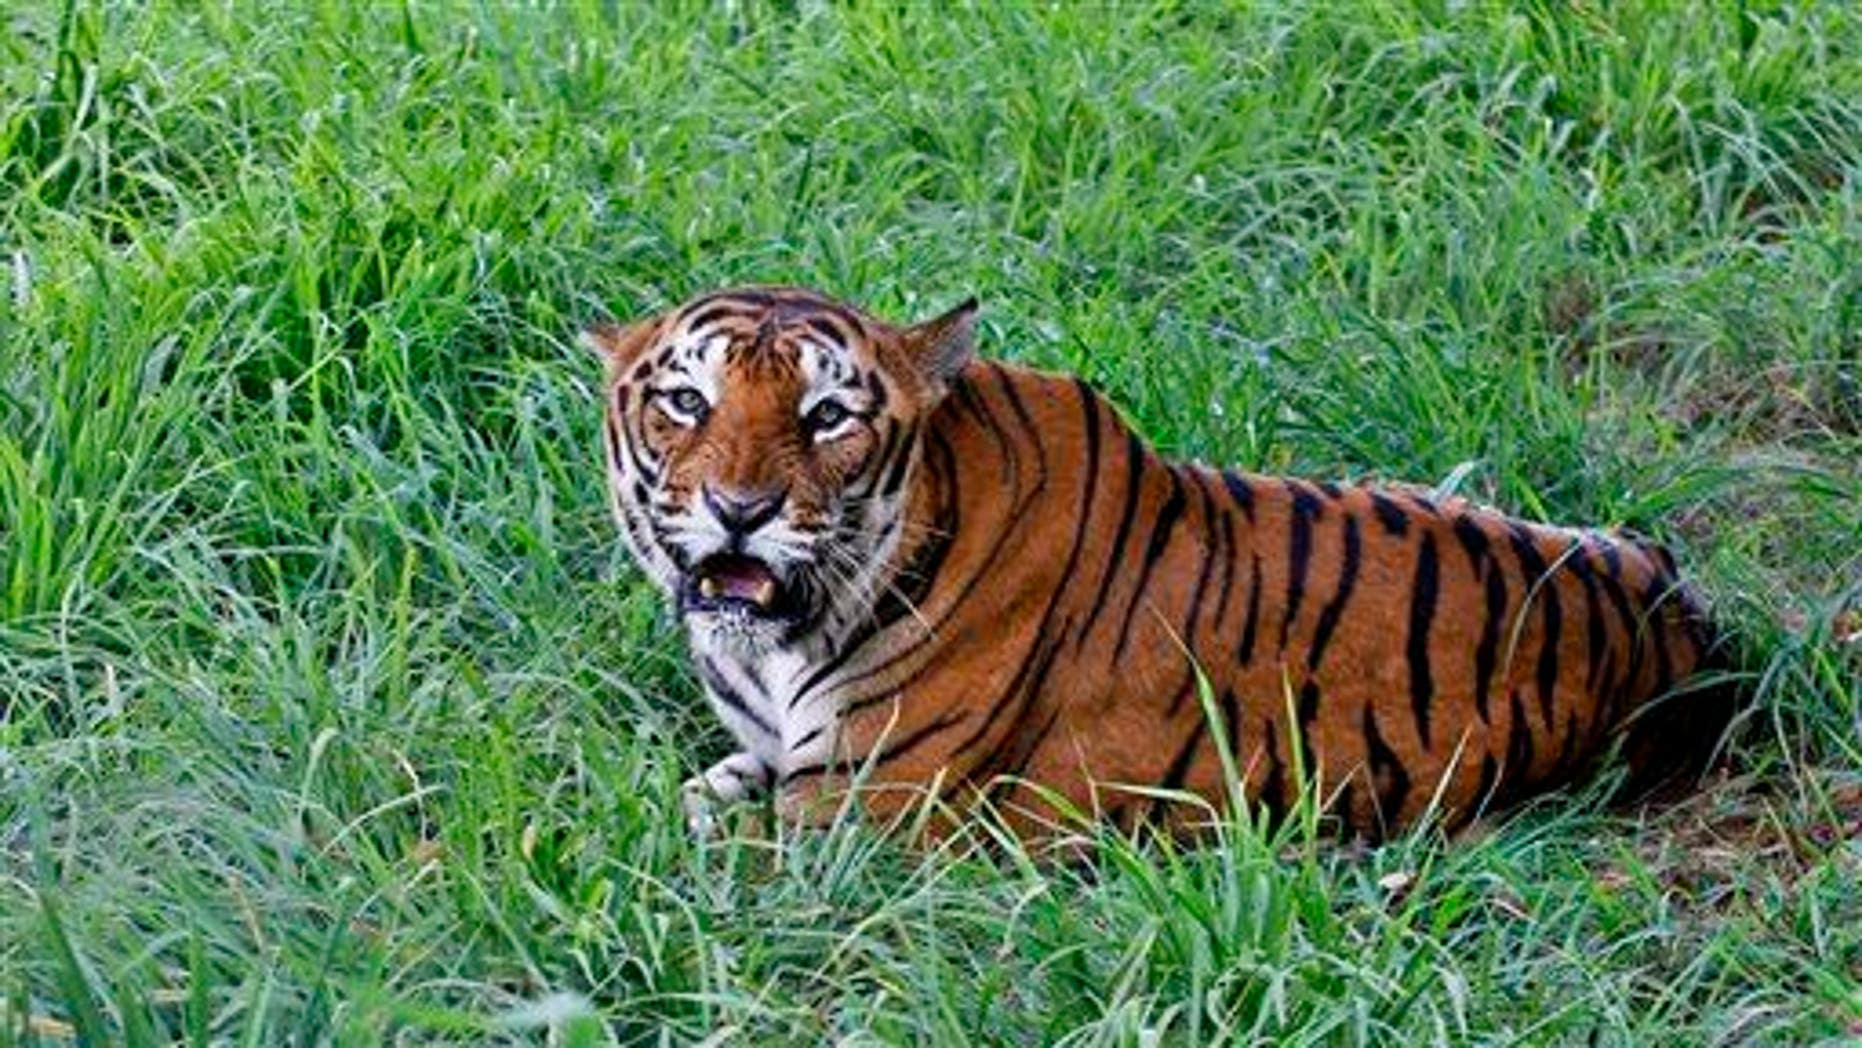 A Bengal tiger rests  in the jungles of Bannerghatta National Park, 16 miles south of Bangalore, India.